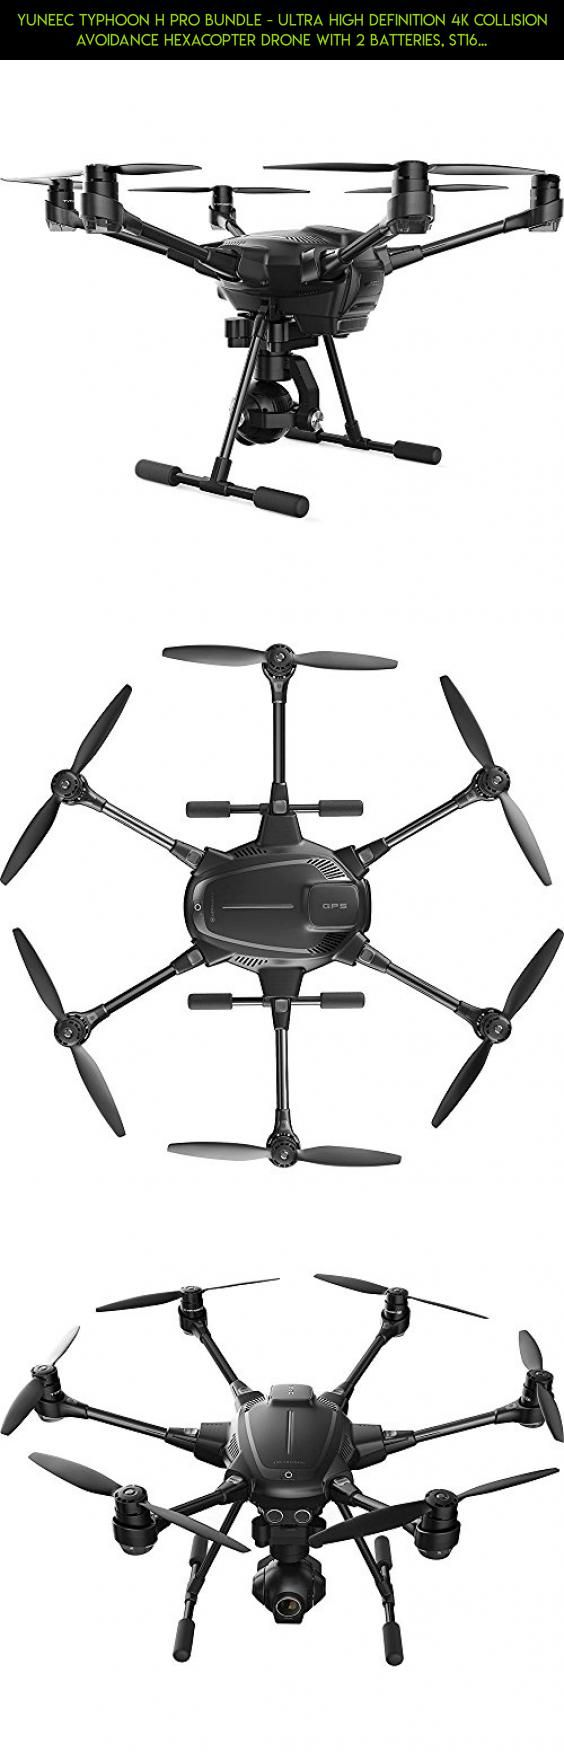 Yuneec Typhoon H Pro Bundle - Ultra High Definition 4K Collision Avoidance Hexacopter Drone with 2 Batteries, ST16 Controller, Wizard and a Backpack #plans #drone #drone #gadgets #racing #camera #yuneec #tech #parts #shopping #products #fpv #kit #technology #4k